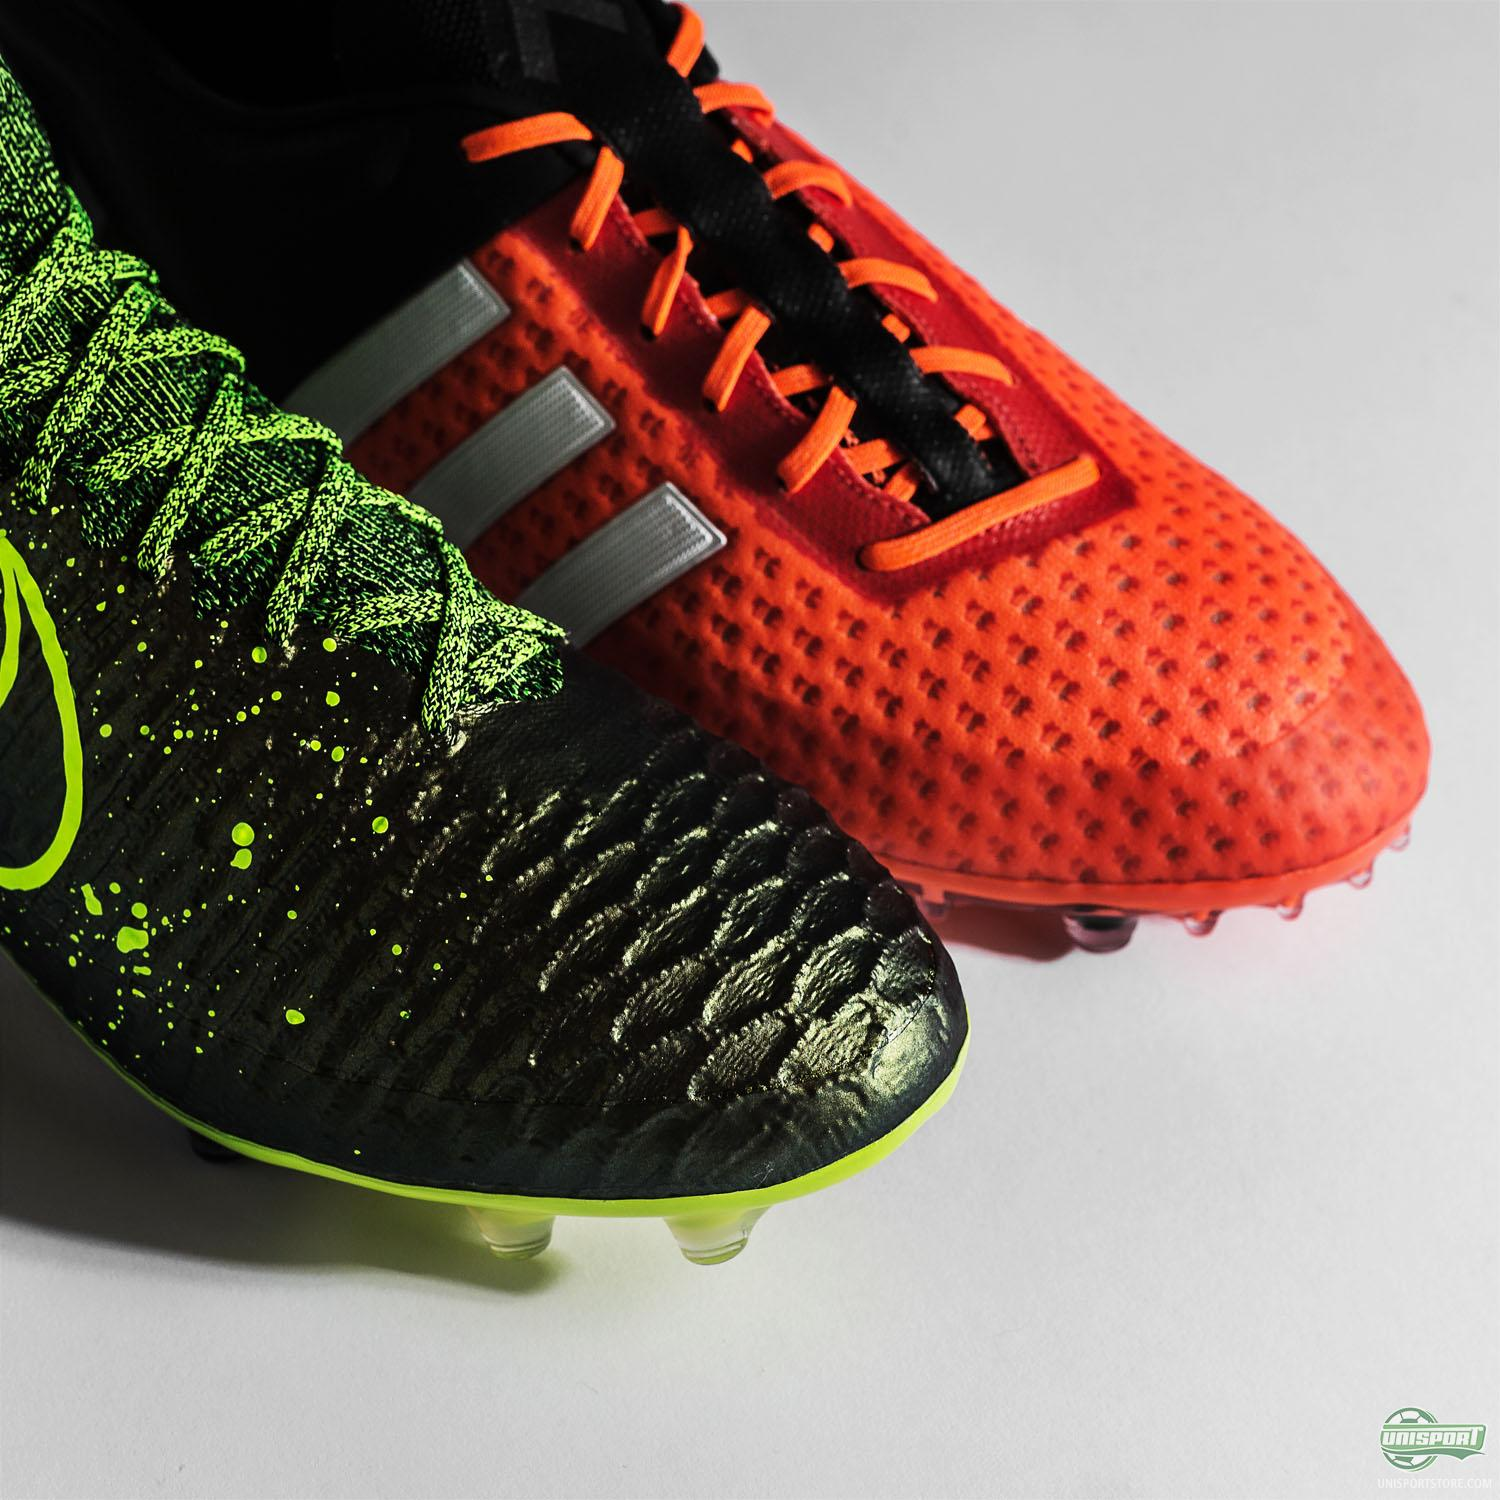 03369bb5d853 The war of knitted boots - Adidas Primeknit vs. Nike Flyknit